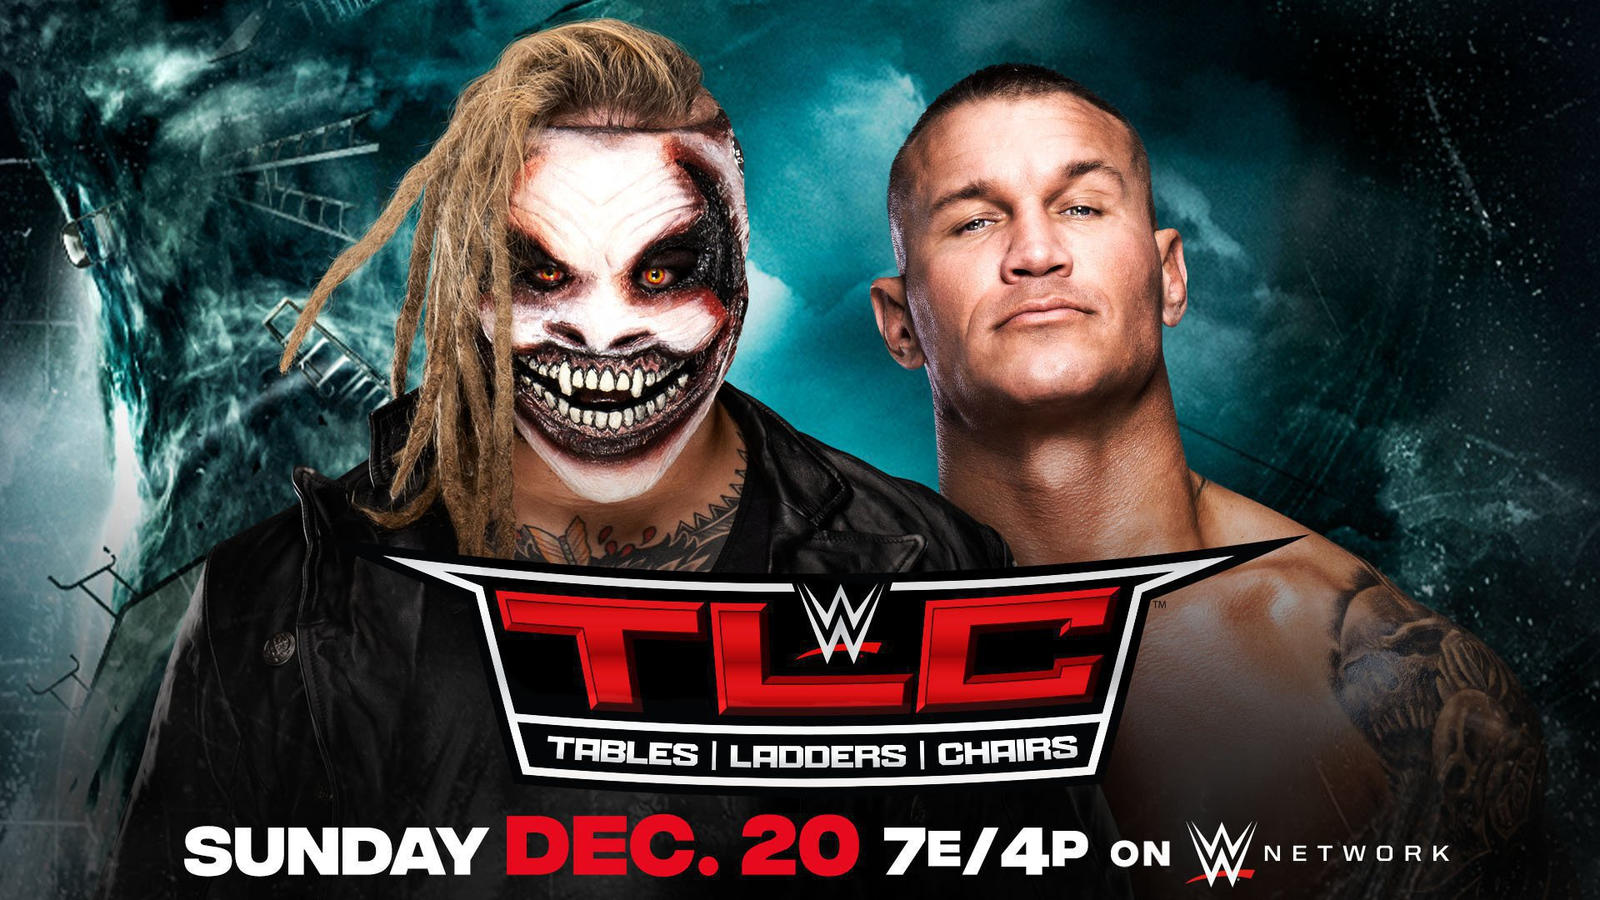 Two Matches Officially Announced For WWE TLC